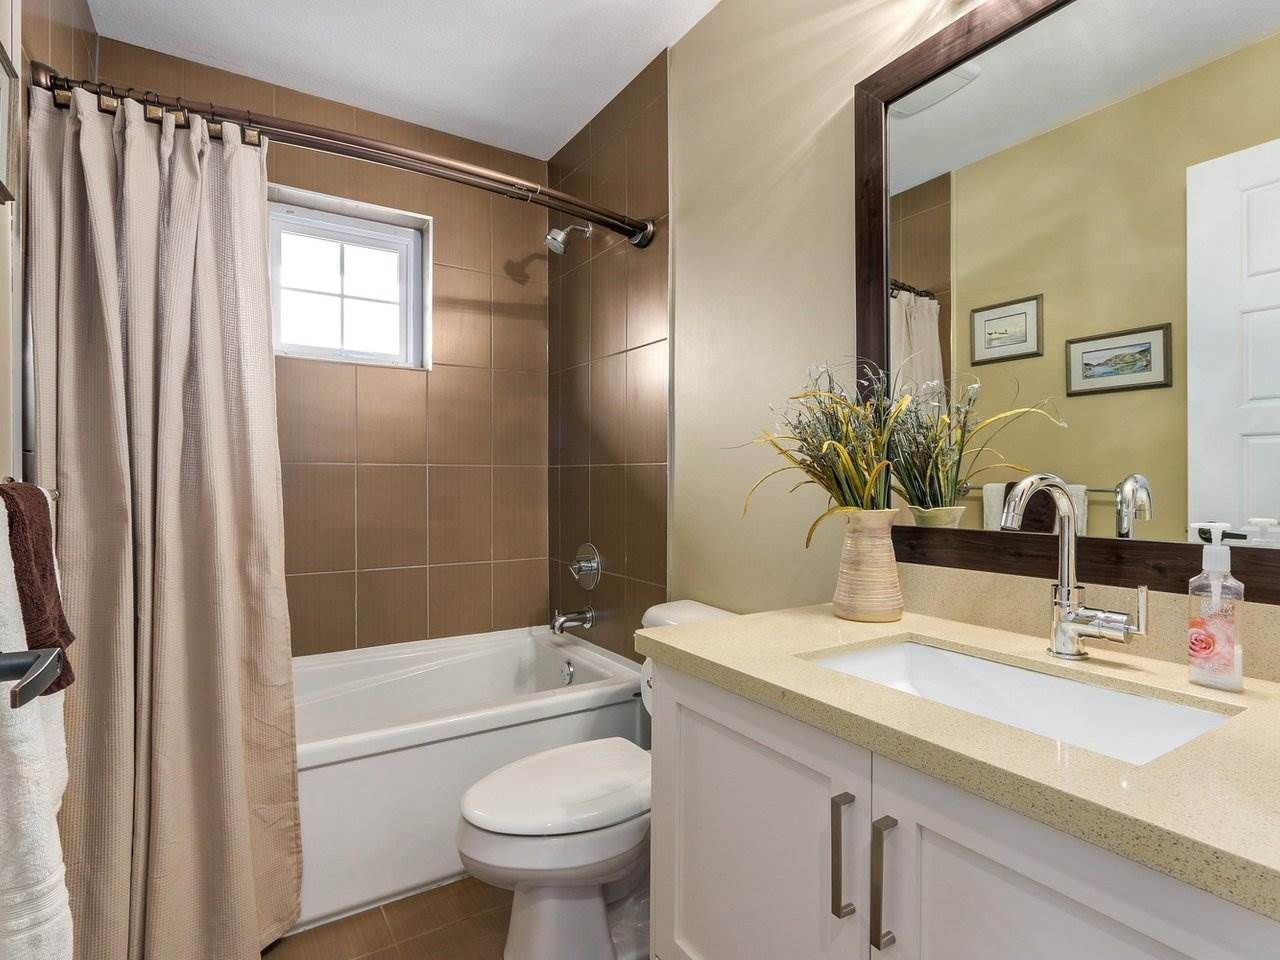 """Photo 14: Photos: 31 17171 2B Avenue in Surrey: Pacific Douglas Townhouse for sale in """"AUGUSTA TOWNHOUSES"""" (South Surrey White Rock)  : MLS®# R2280398"""